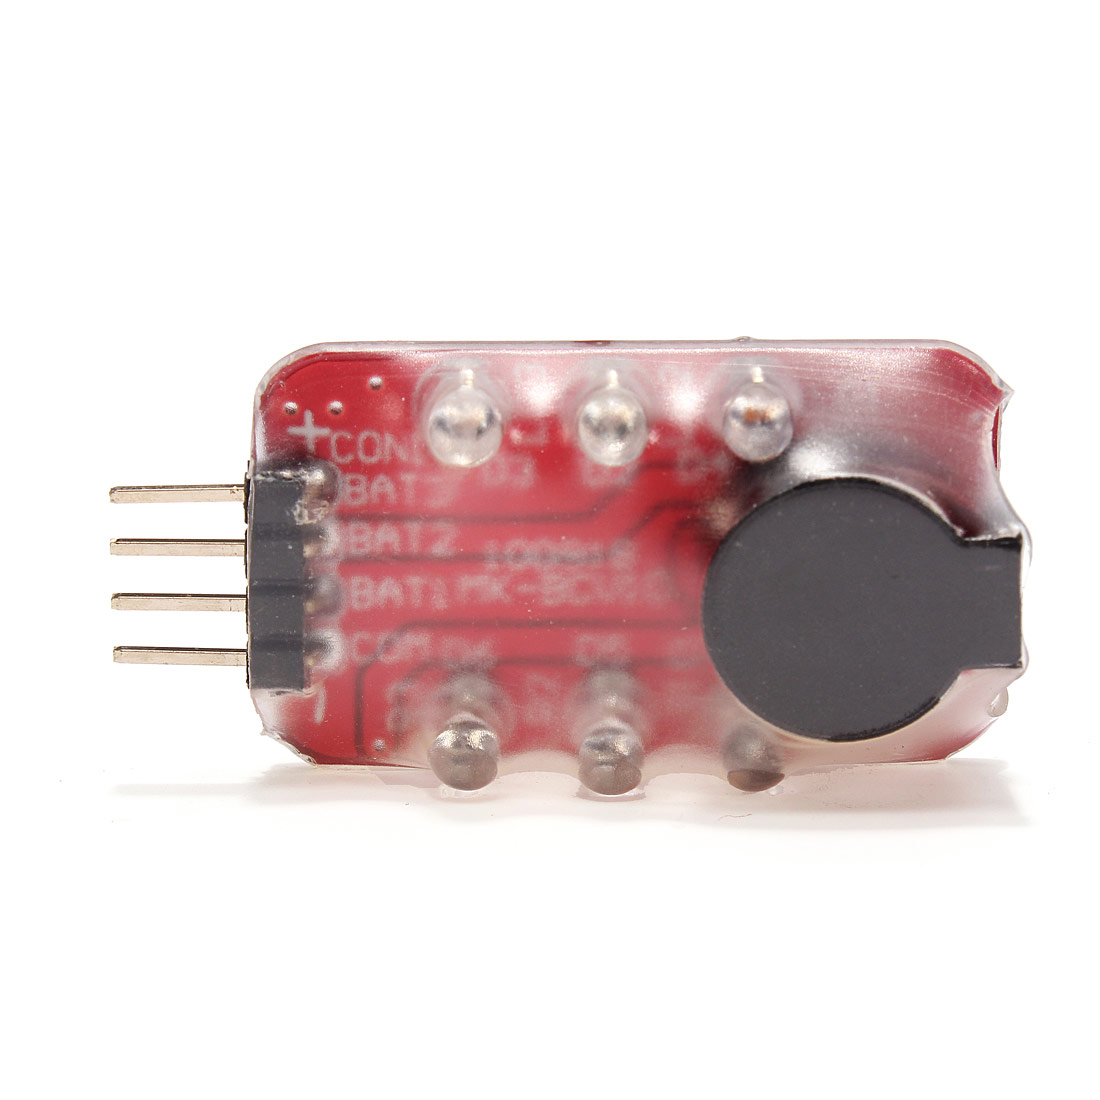 7.4V -11.1V 2S-<font><b>3S</b></font> RC Lipo <font><b>Battery</b></font> Low Voltage Buzzer Alarm <font><b>Indicator</b></font> New image